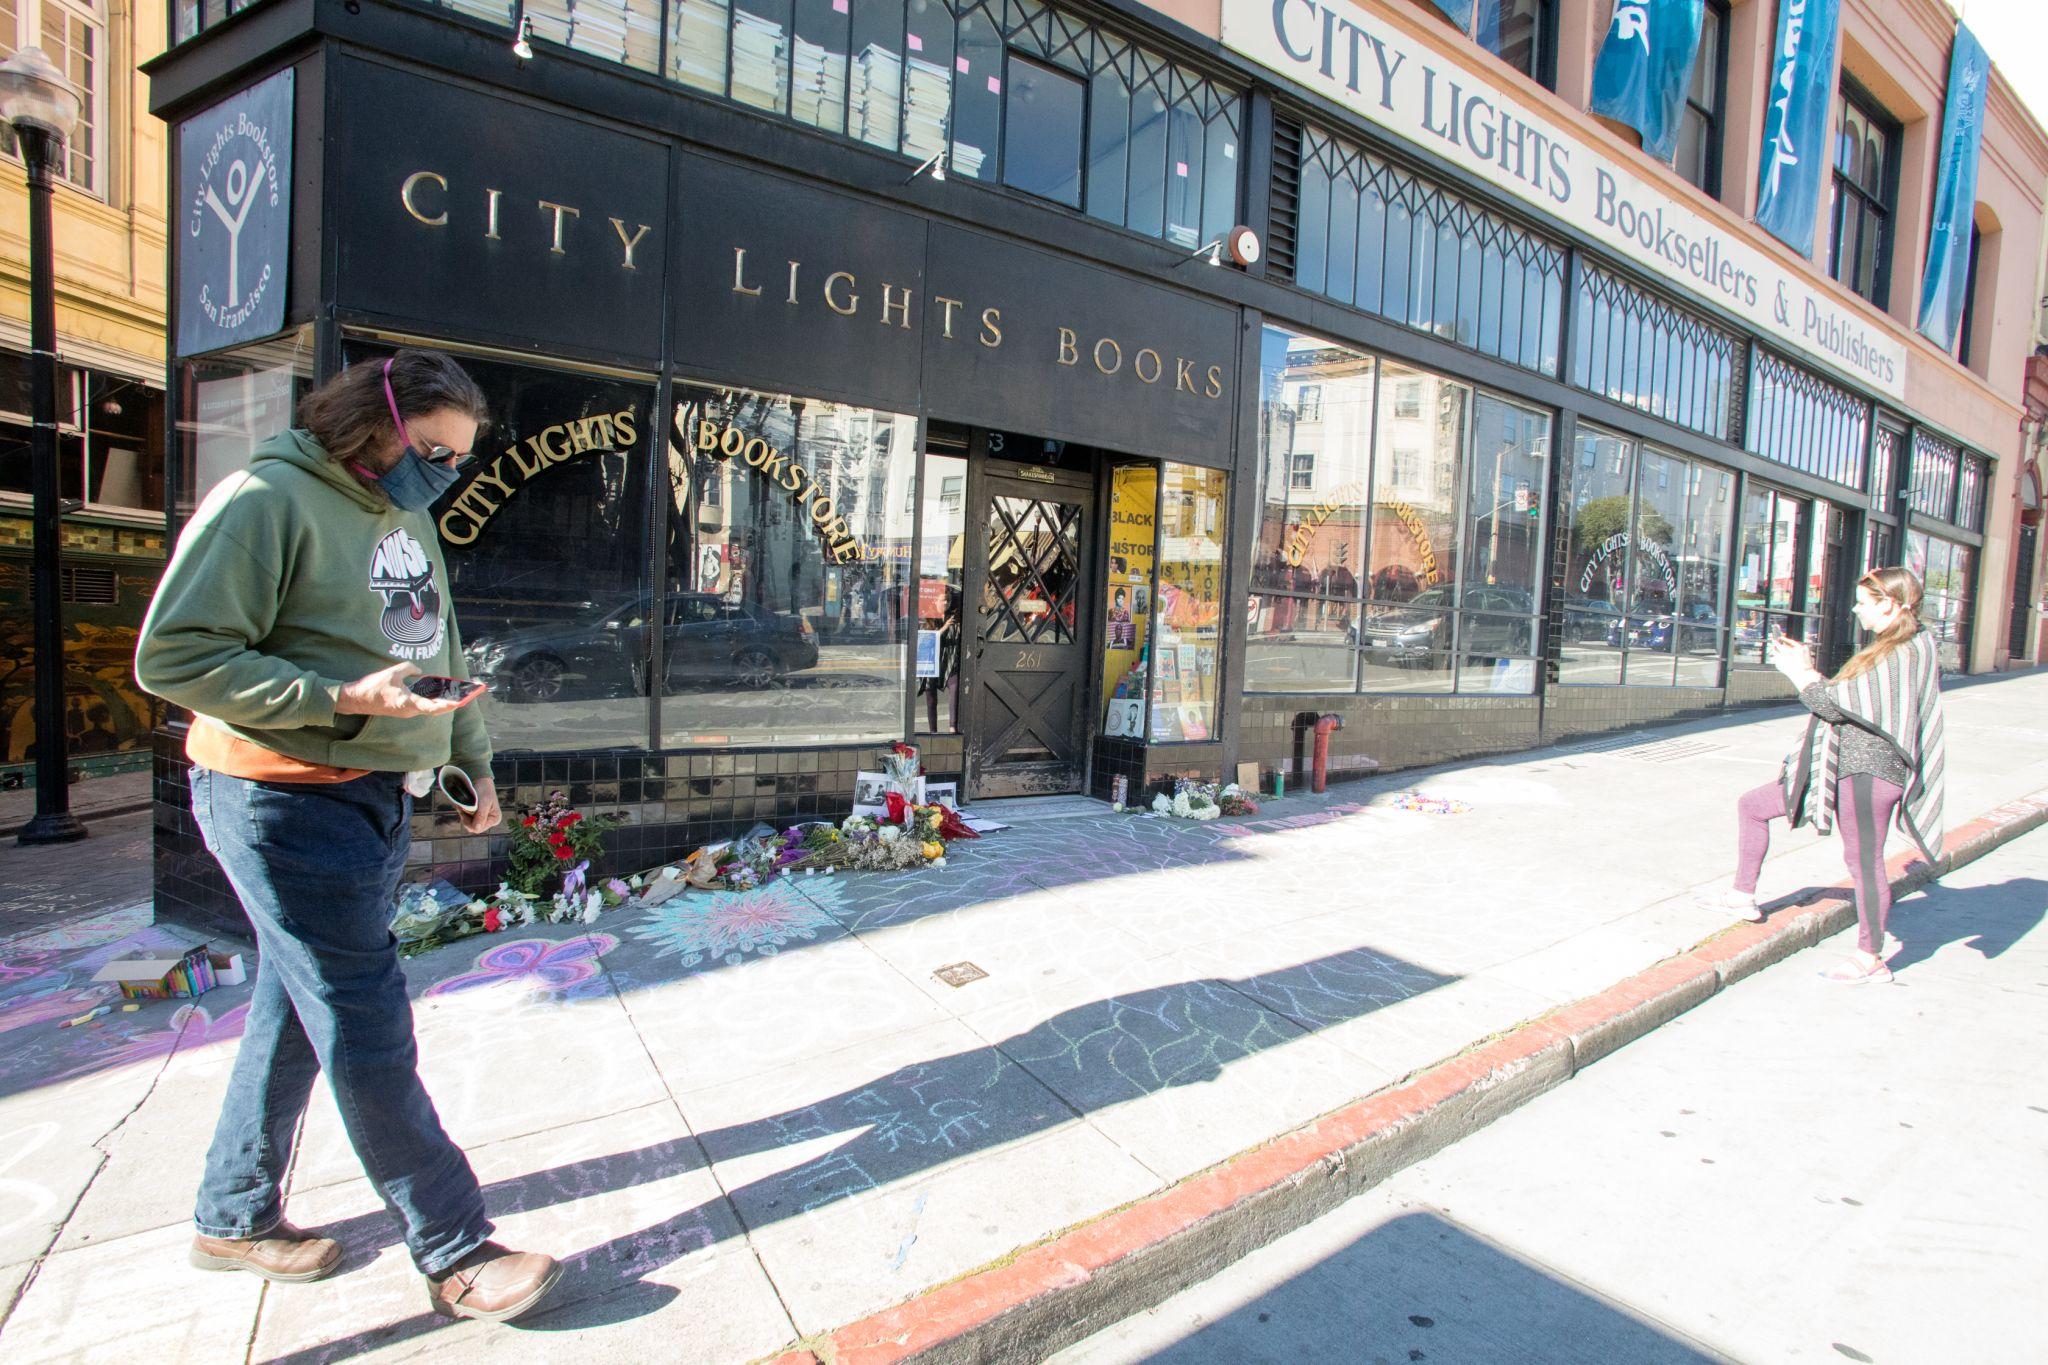 Visitors look at the chalk art covering the sidewalk in front of City Lights bookstore in North Beach. An impromptu memorial in honor of Lawrence Ferlinghetti appeared overnight in front of the City Lights bookstore in San Francisco on Feb. 24, 2021.